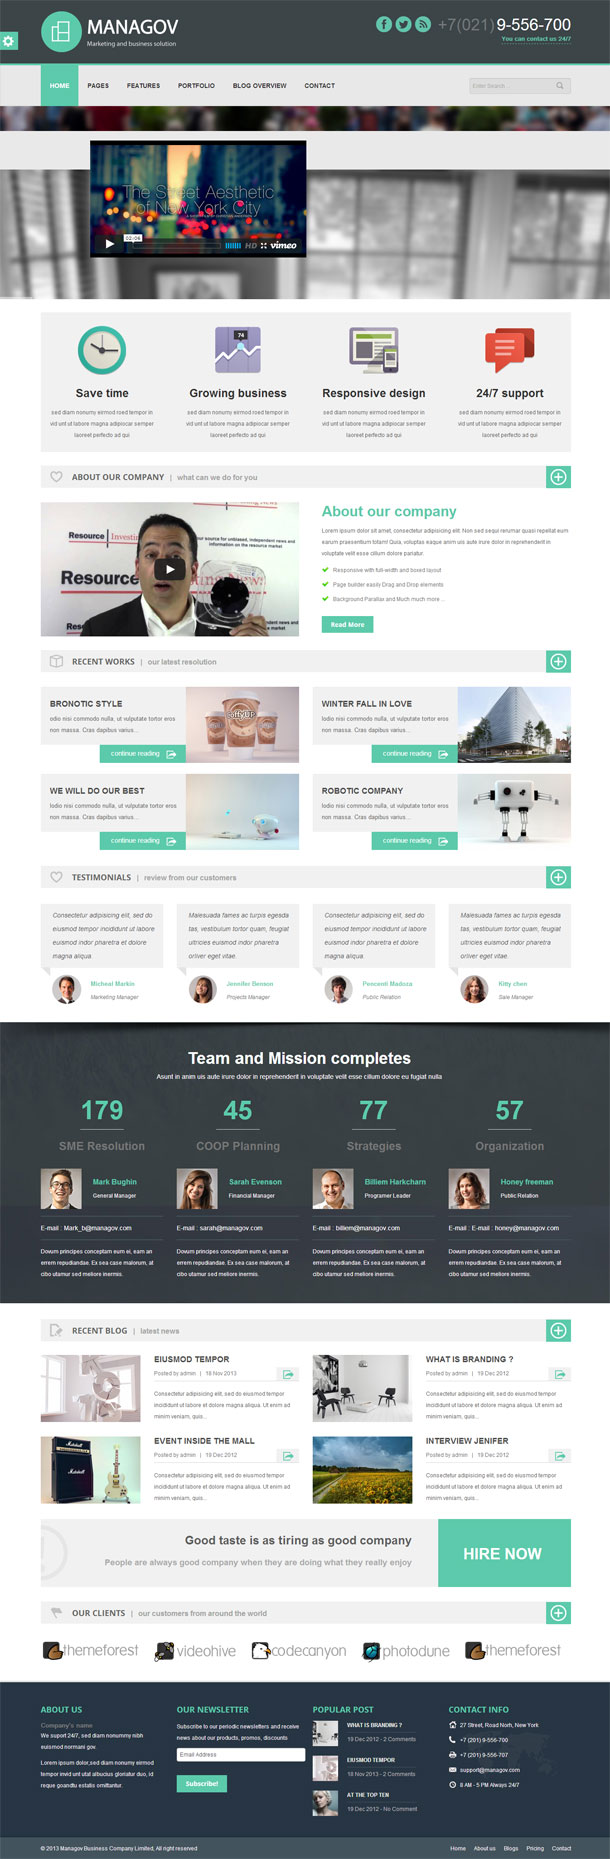 Managov Business Theme Image